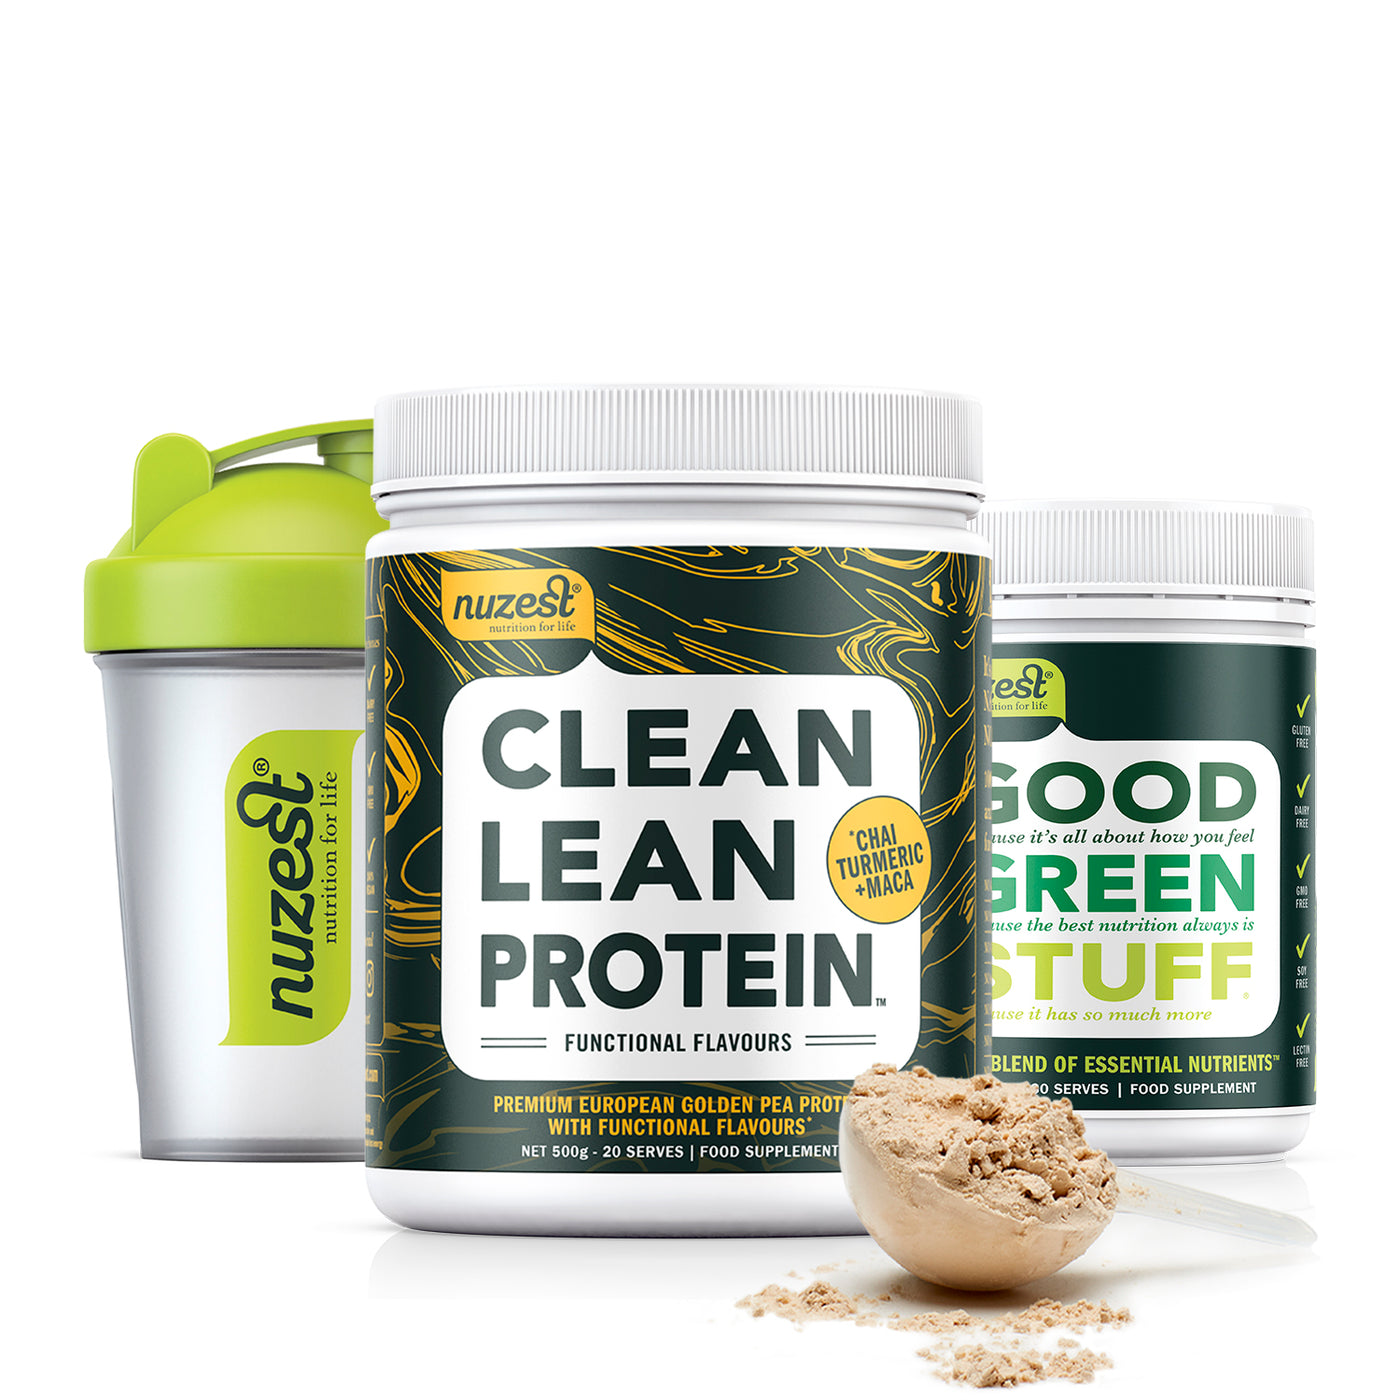 Clean Lean Protein Bulk-Buy Pack